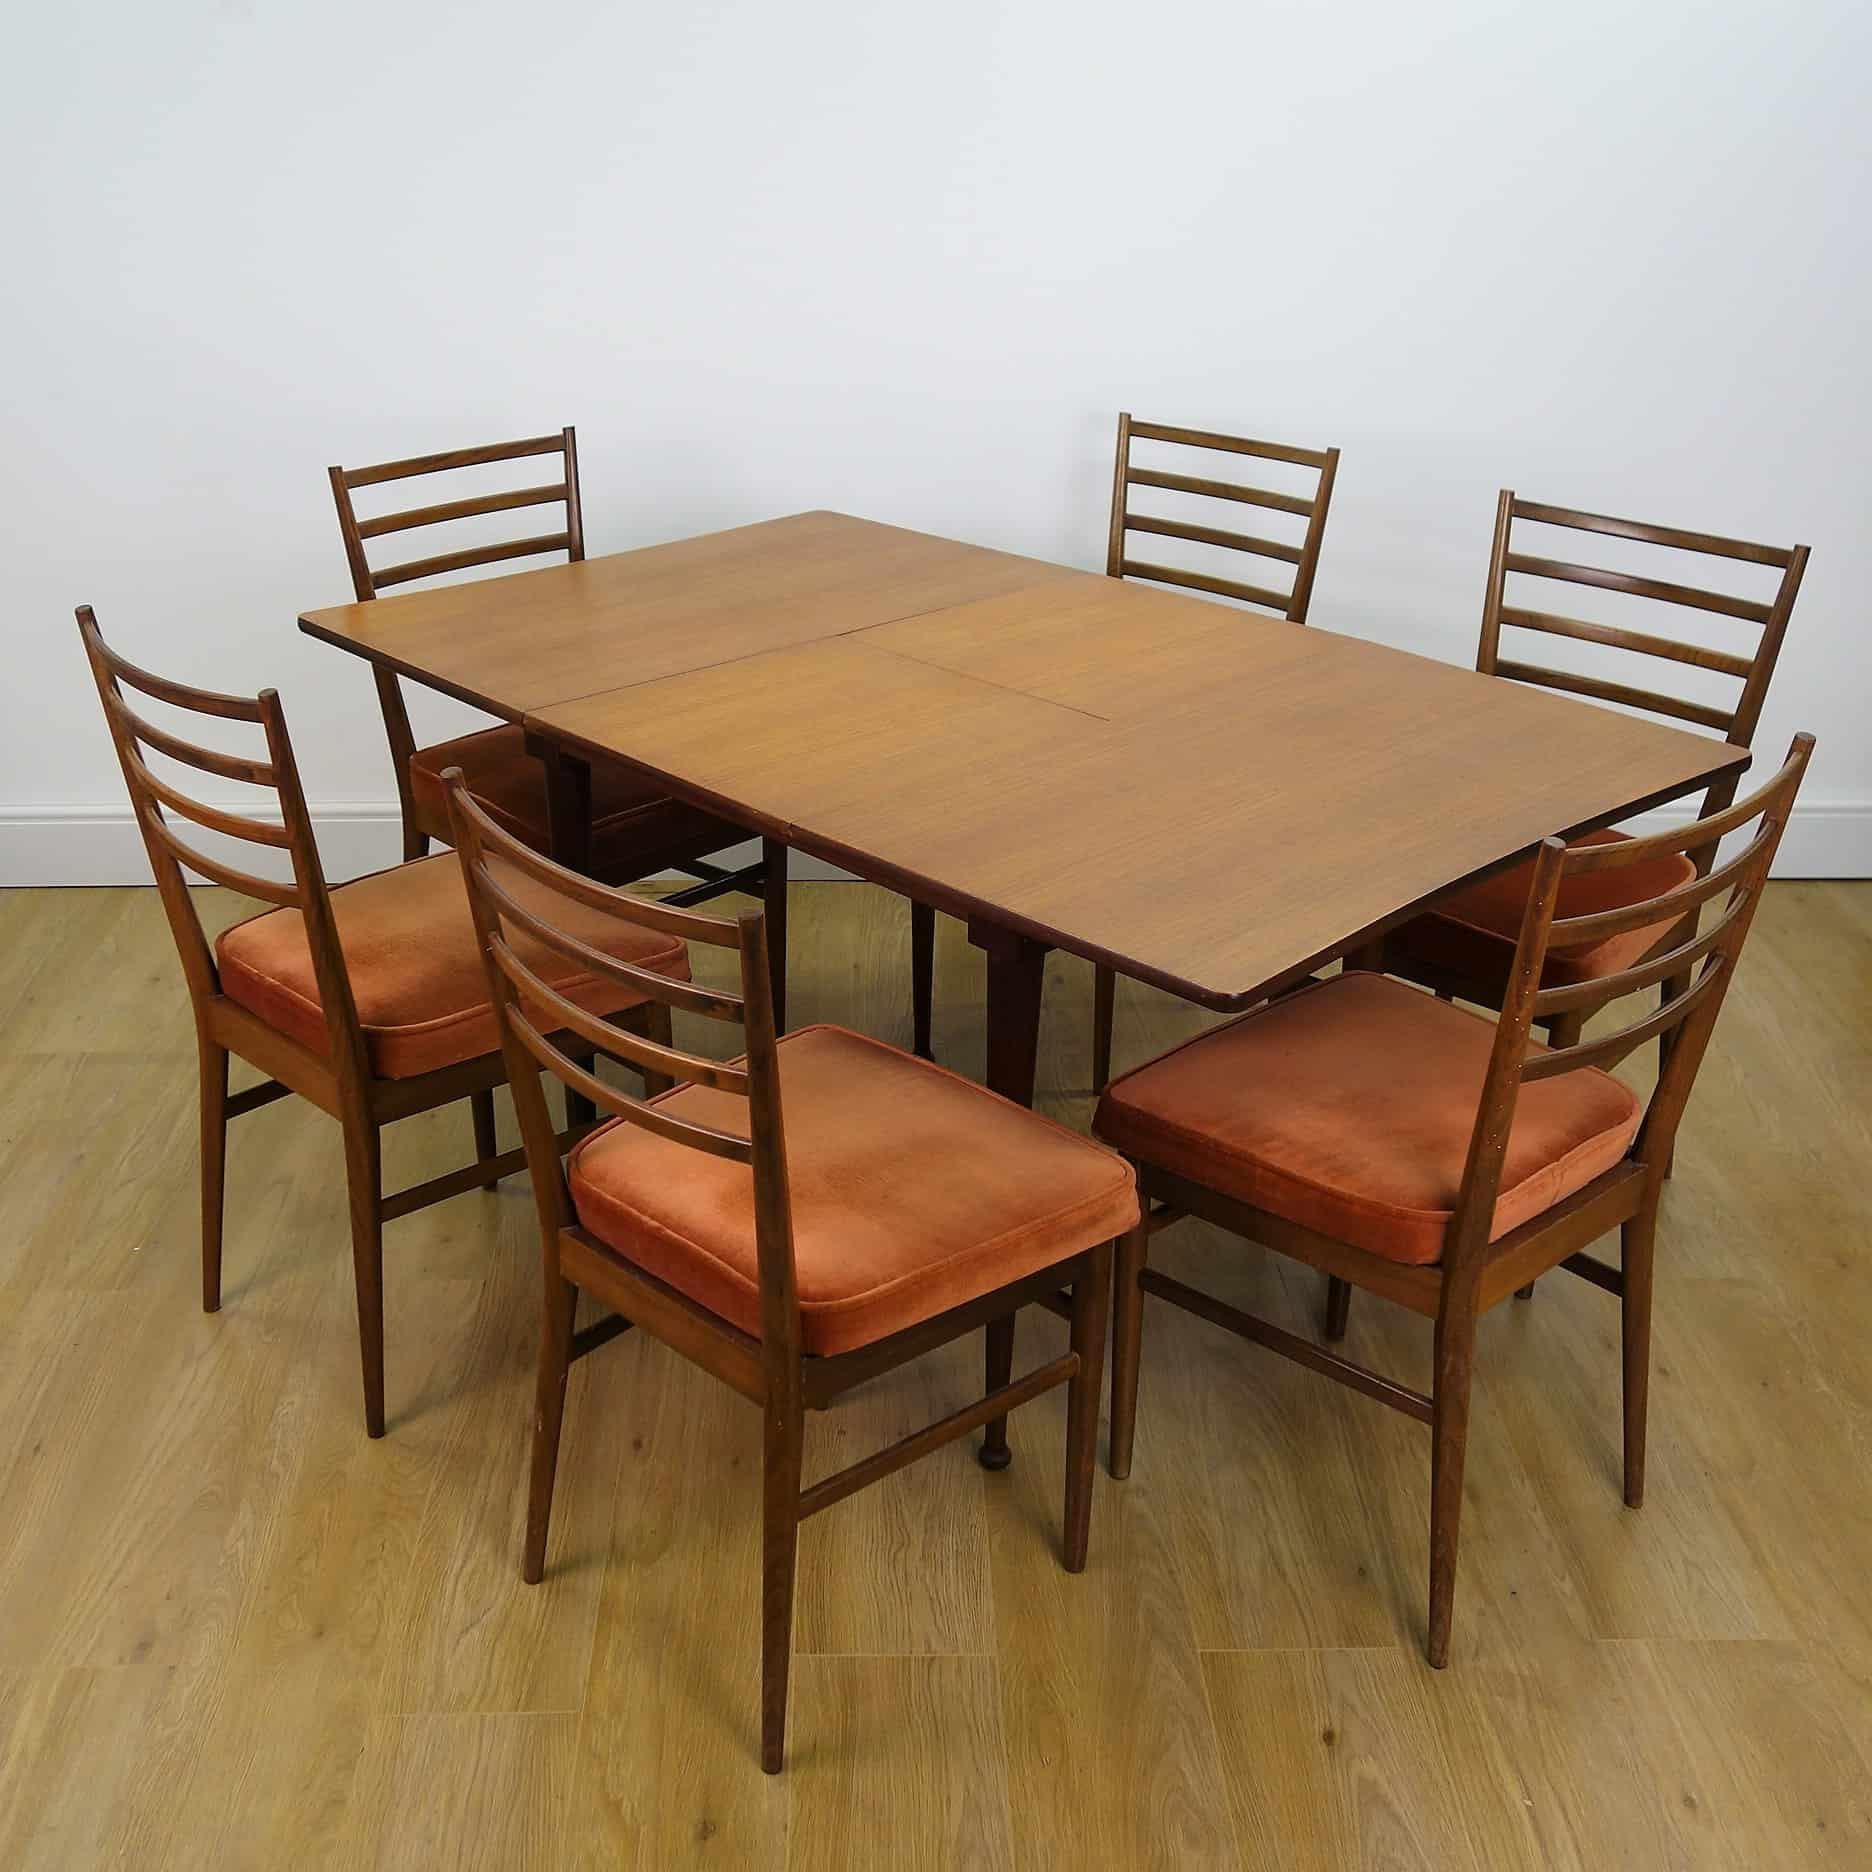 1960s Teak dining table and chairs by Meredew - Mark ...